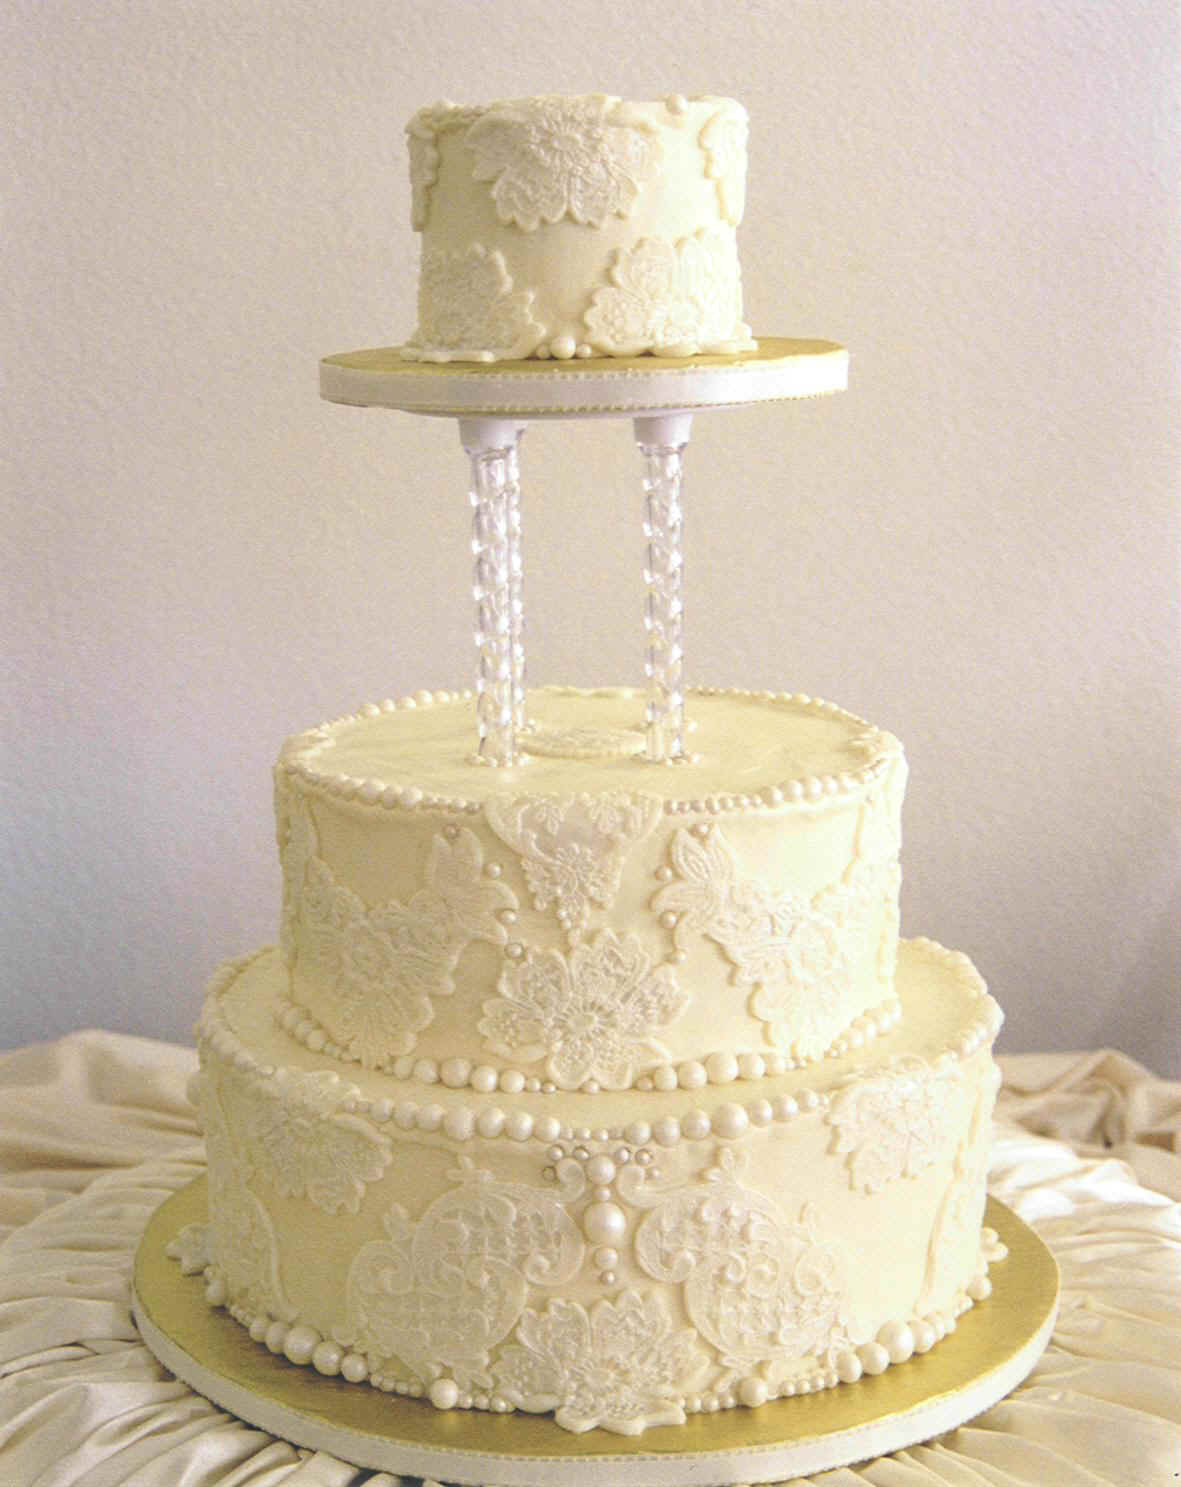 Lace Design Wedding Cake : Have a vintage theme choose Lace Wedding Cake Designs ...